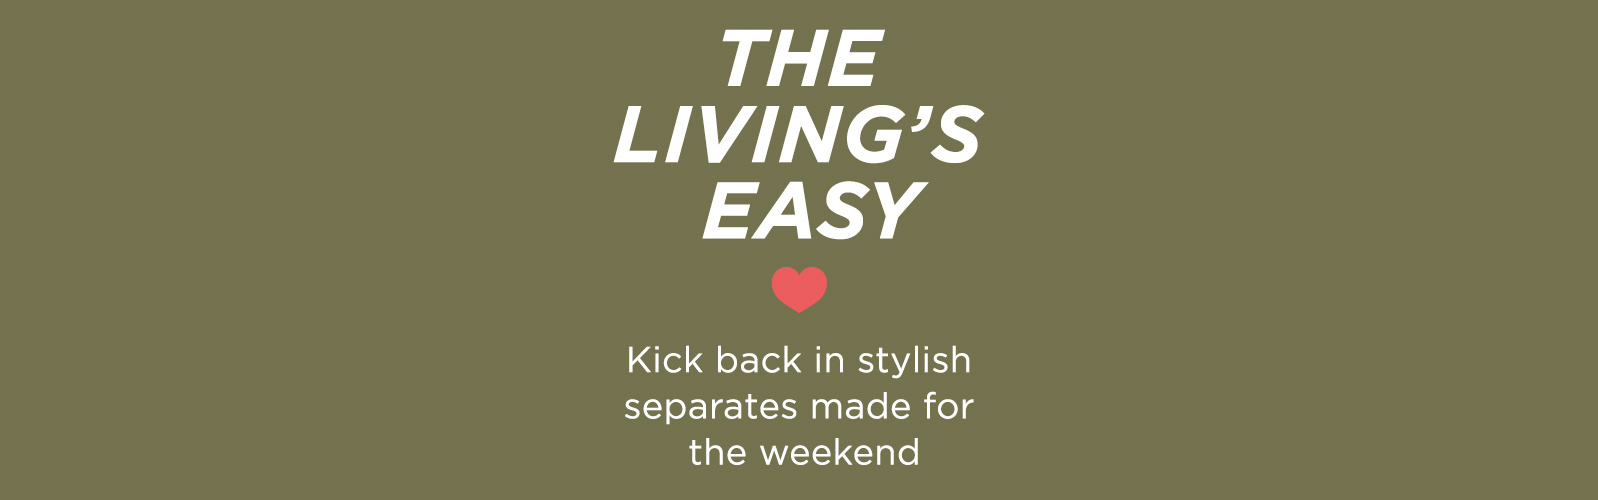 The Living's Easy - Kick back in stylish separates made for the weekend